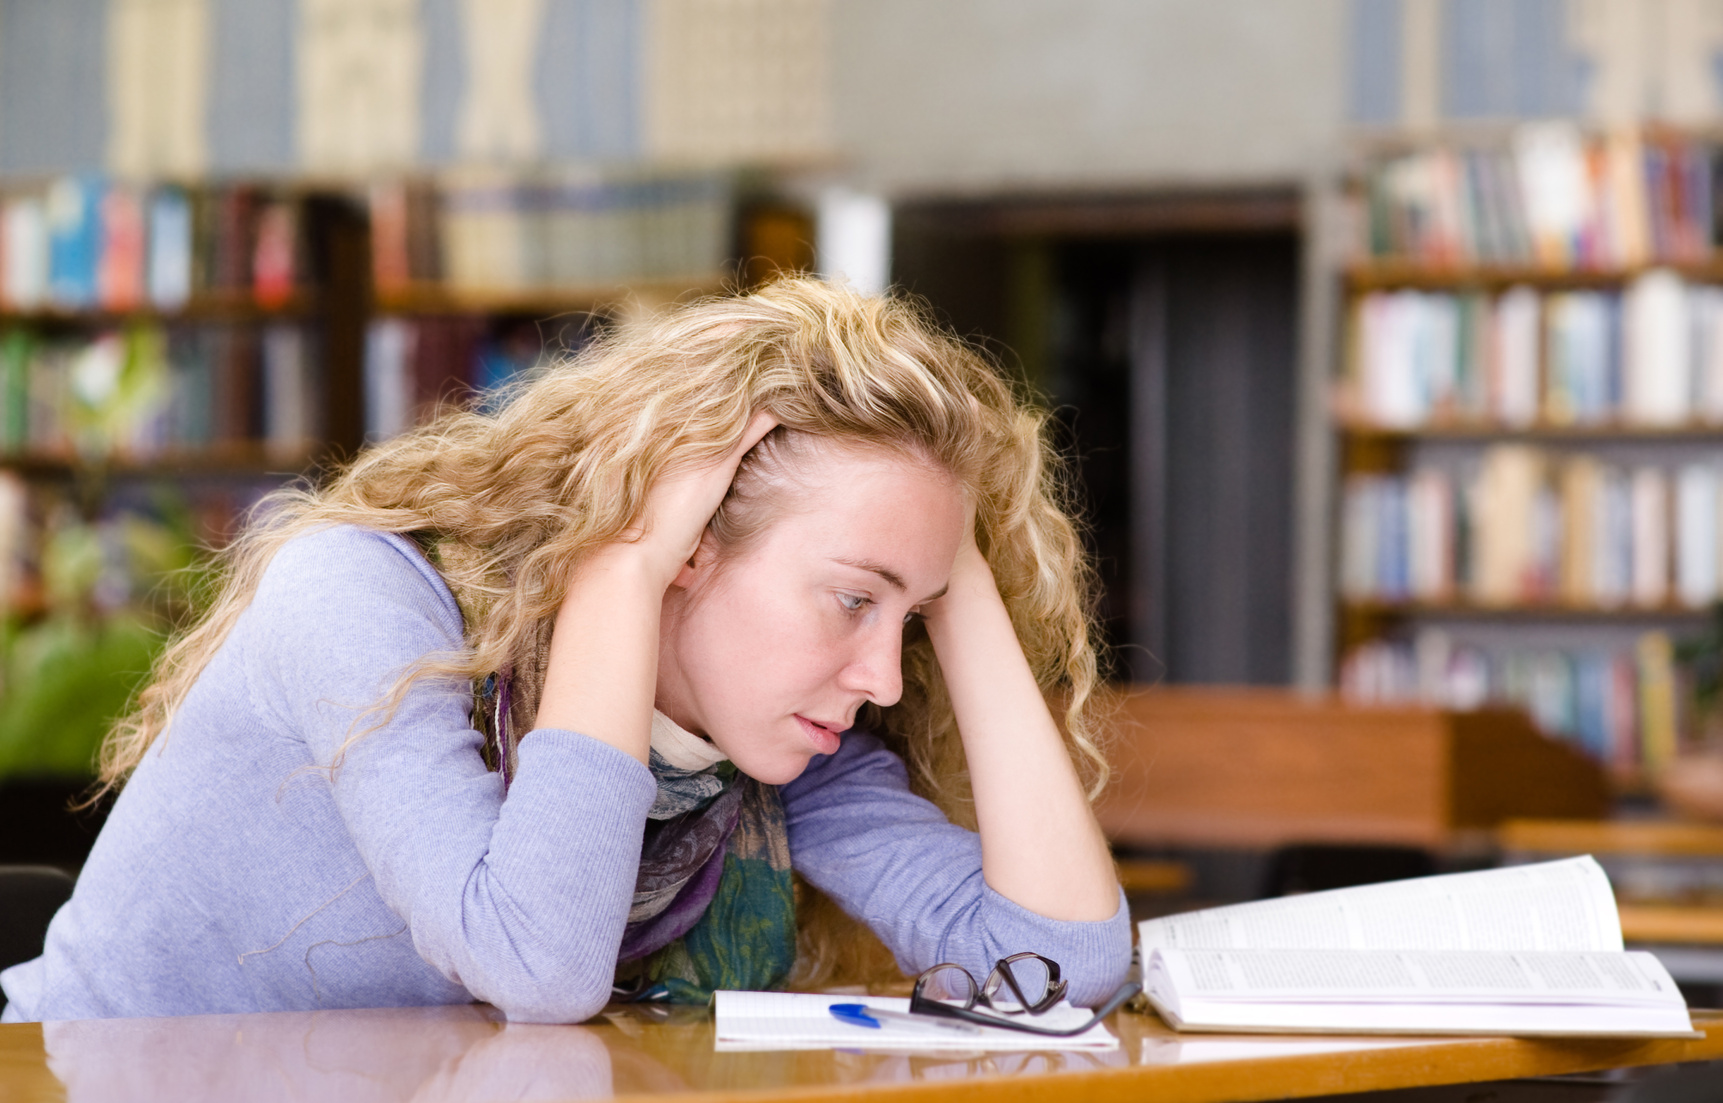 mental health of college students the issue of depression anxiety and suicide Colleges are trying to help students learn to cope while also addressing mental health issues college students depression, anxiety and suicide.